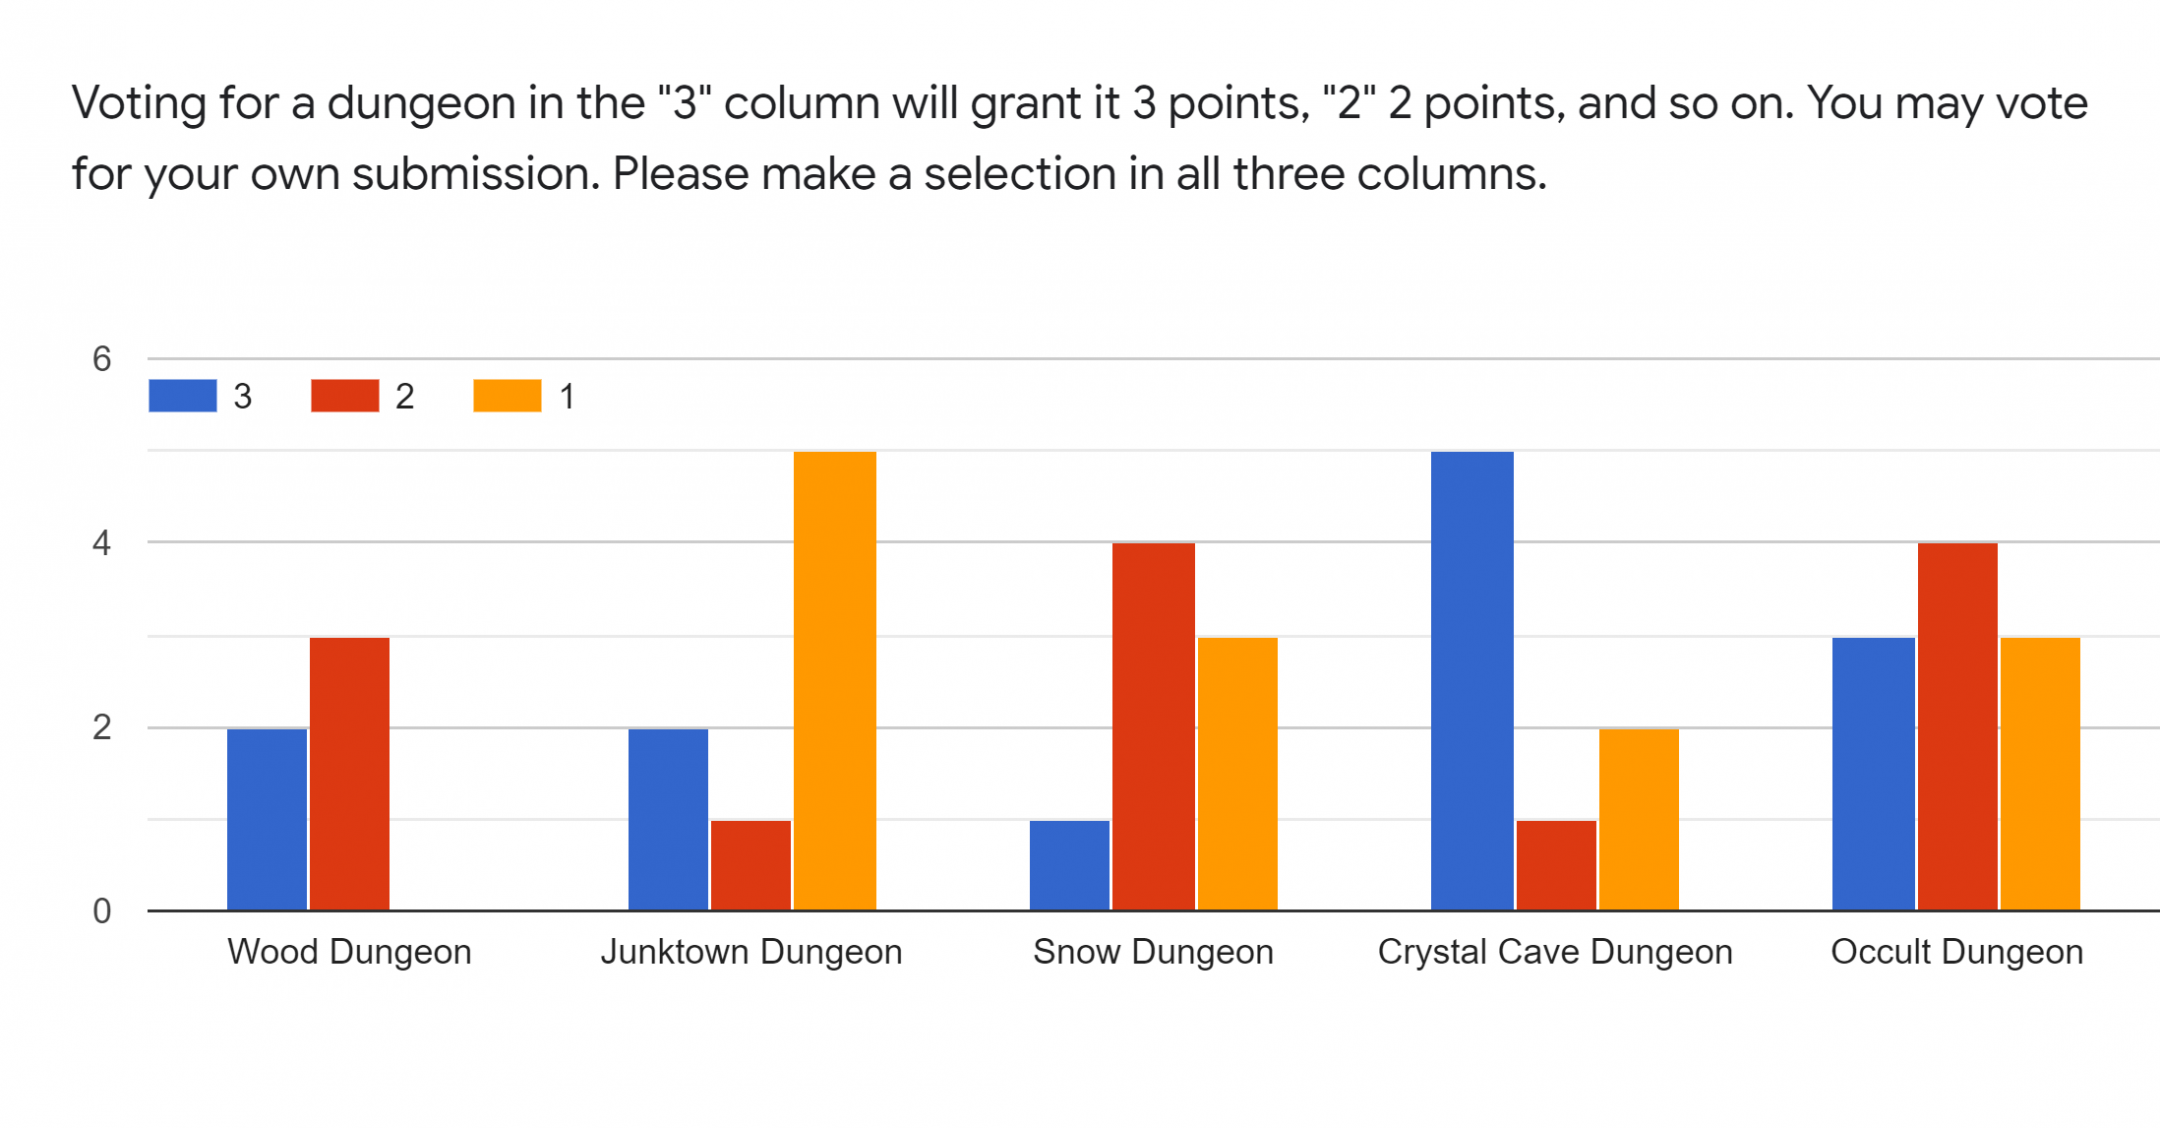 Forms response chart. Question title: Voting for a dungeon in the 3 column will grant it 3 points, 2 2 points, and so on. You may vote for your own submission. Please make a selection in all three columns.. Number of responses: .